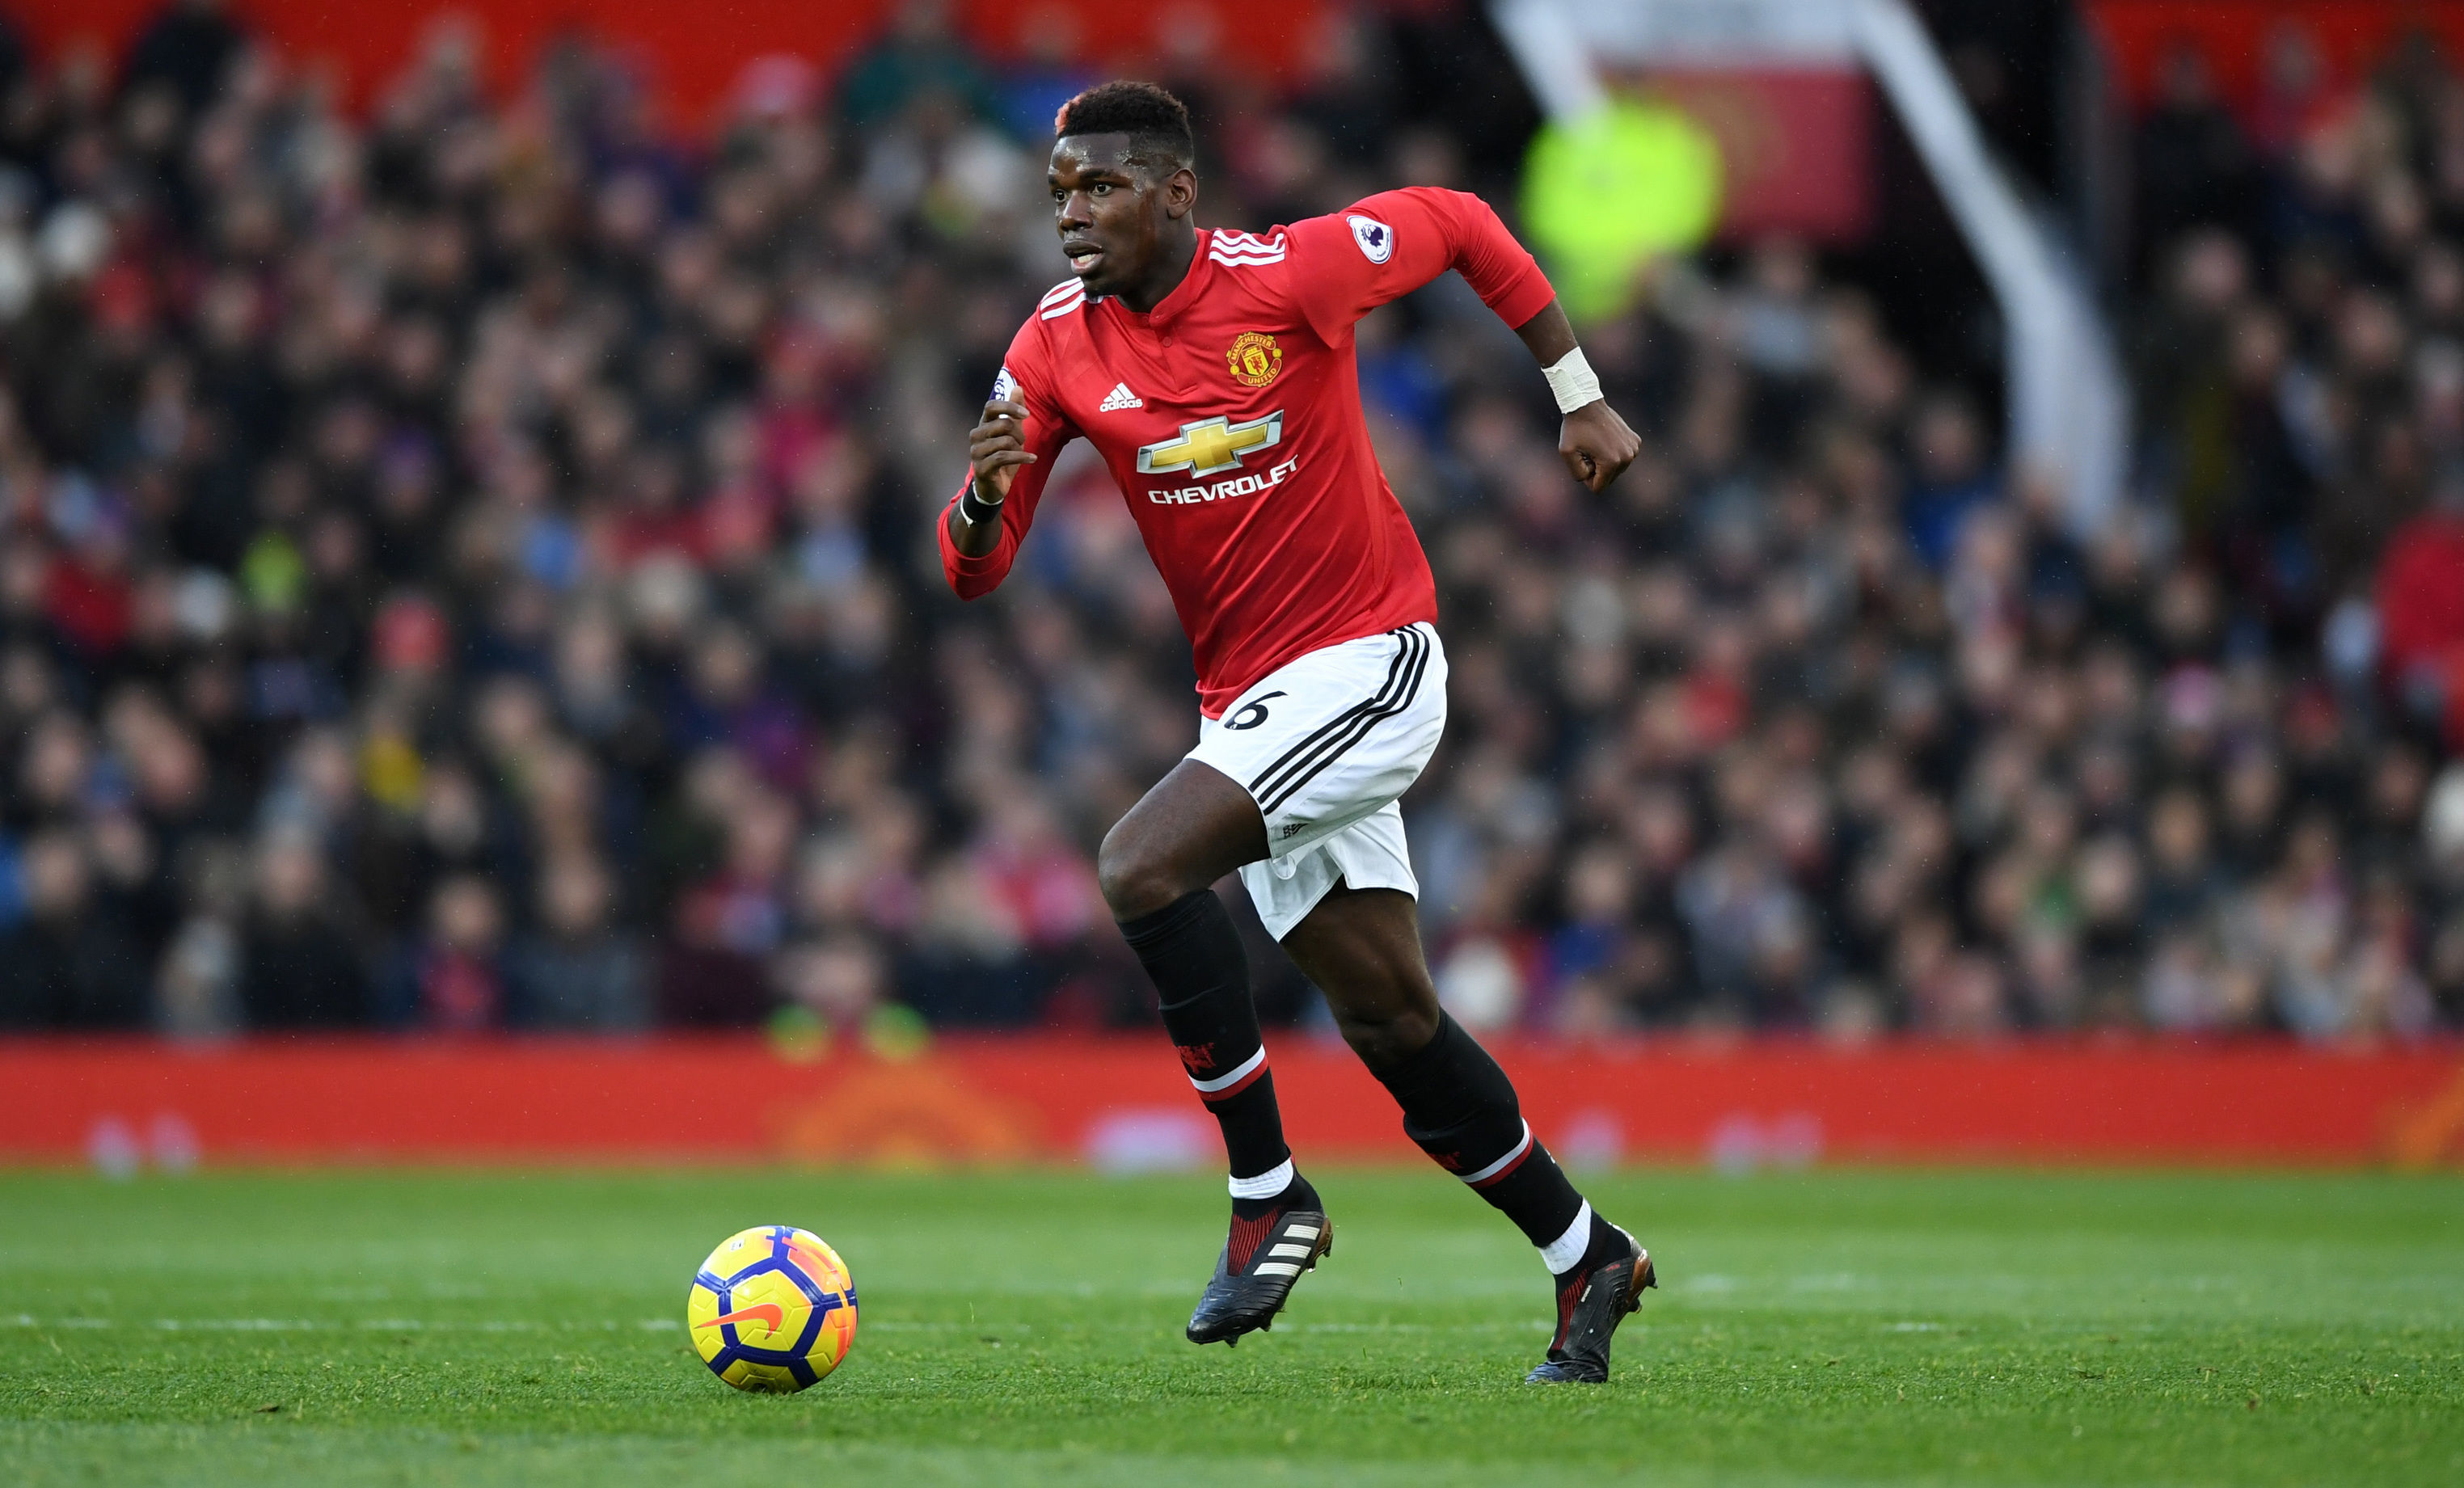 cinta camuflaje Anoi  A Look Back at Paul Pogba's Most Iconic Looks - Urban Pitch